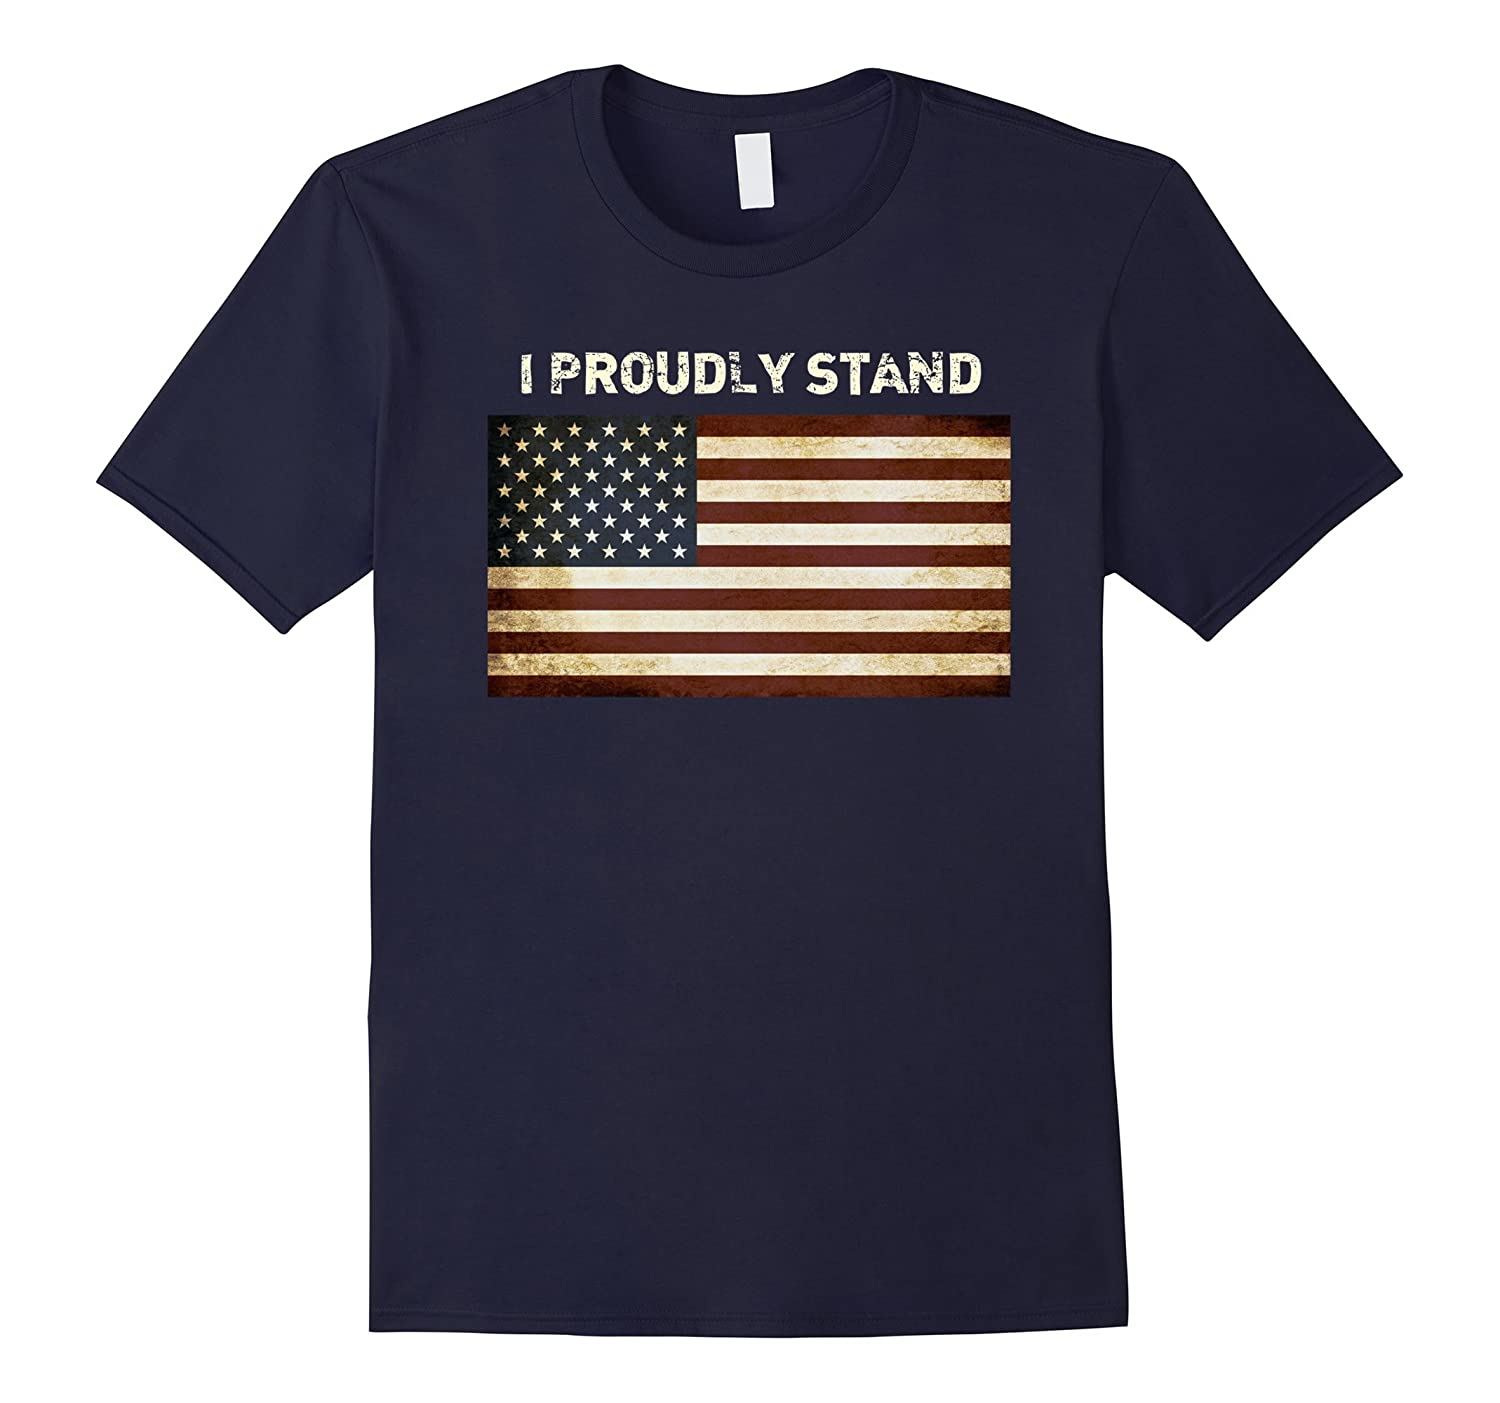 A Proud American Shirt I Proudly Stand for the Flag Tshirt-T-Shirt